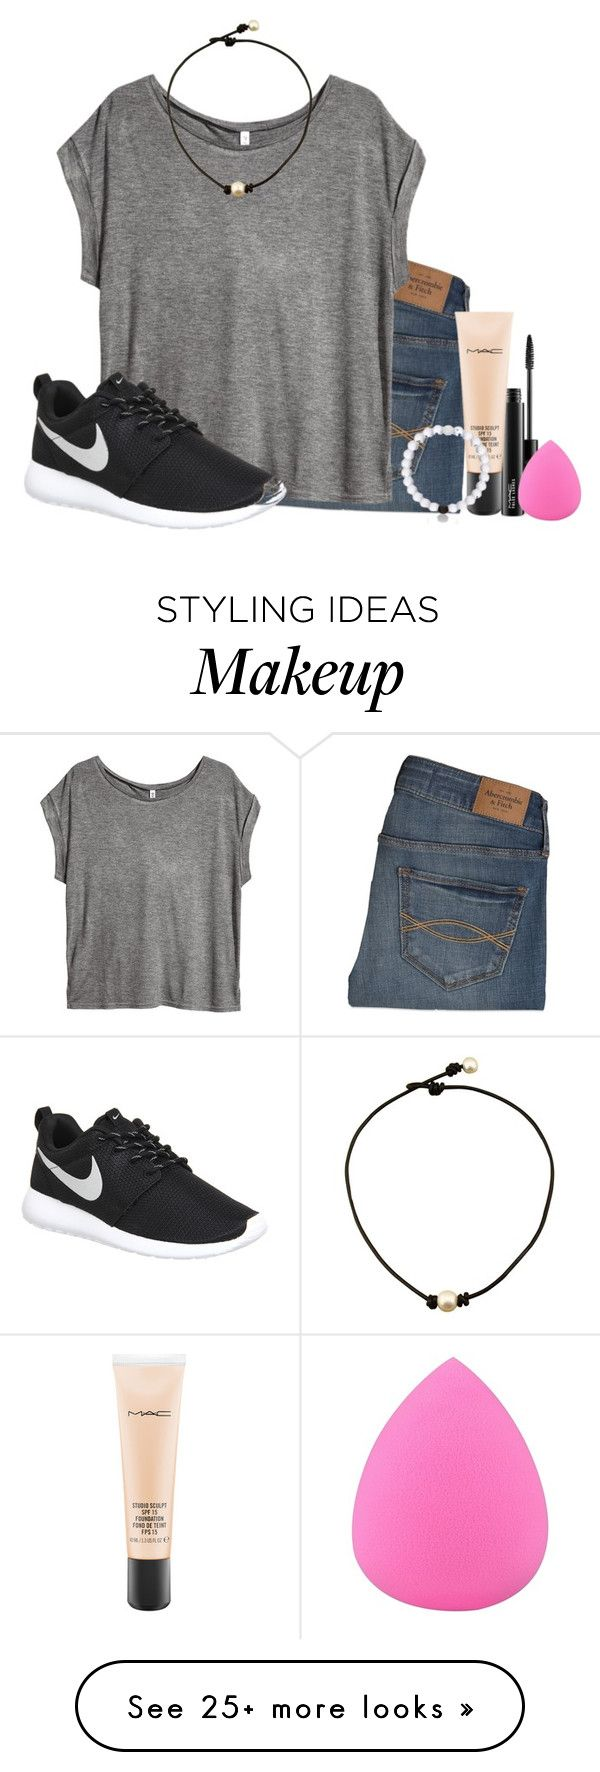 you wanted this, not me. so why keep staring at me? by ellababy13 on Polyvore featuring Abercrombie  Fitch, MAC Cosmetics, HM, Zodaca, NIKE, womens clothing, womens fashion, women, female and woman